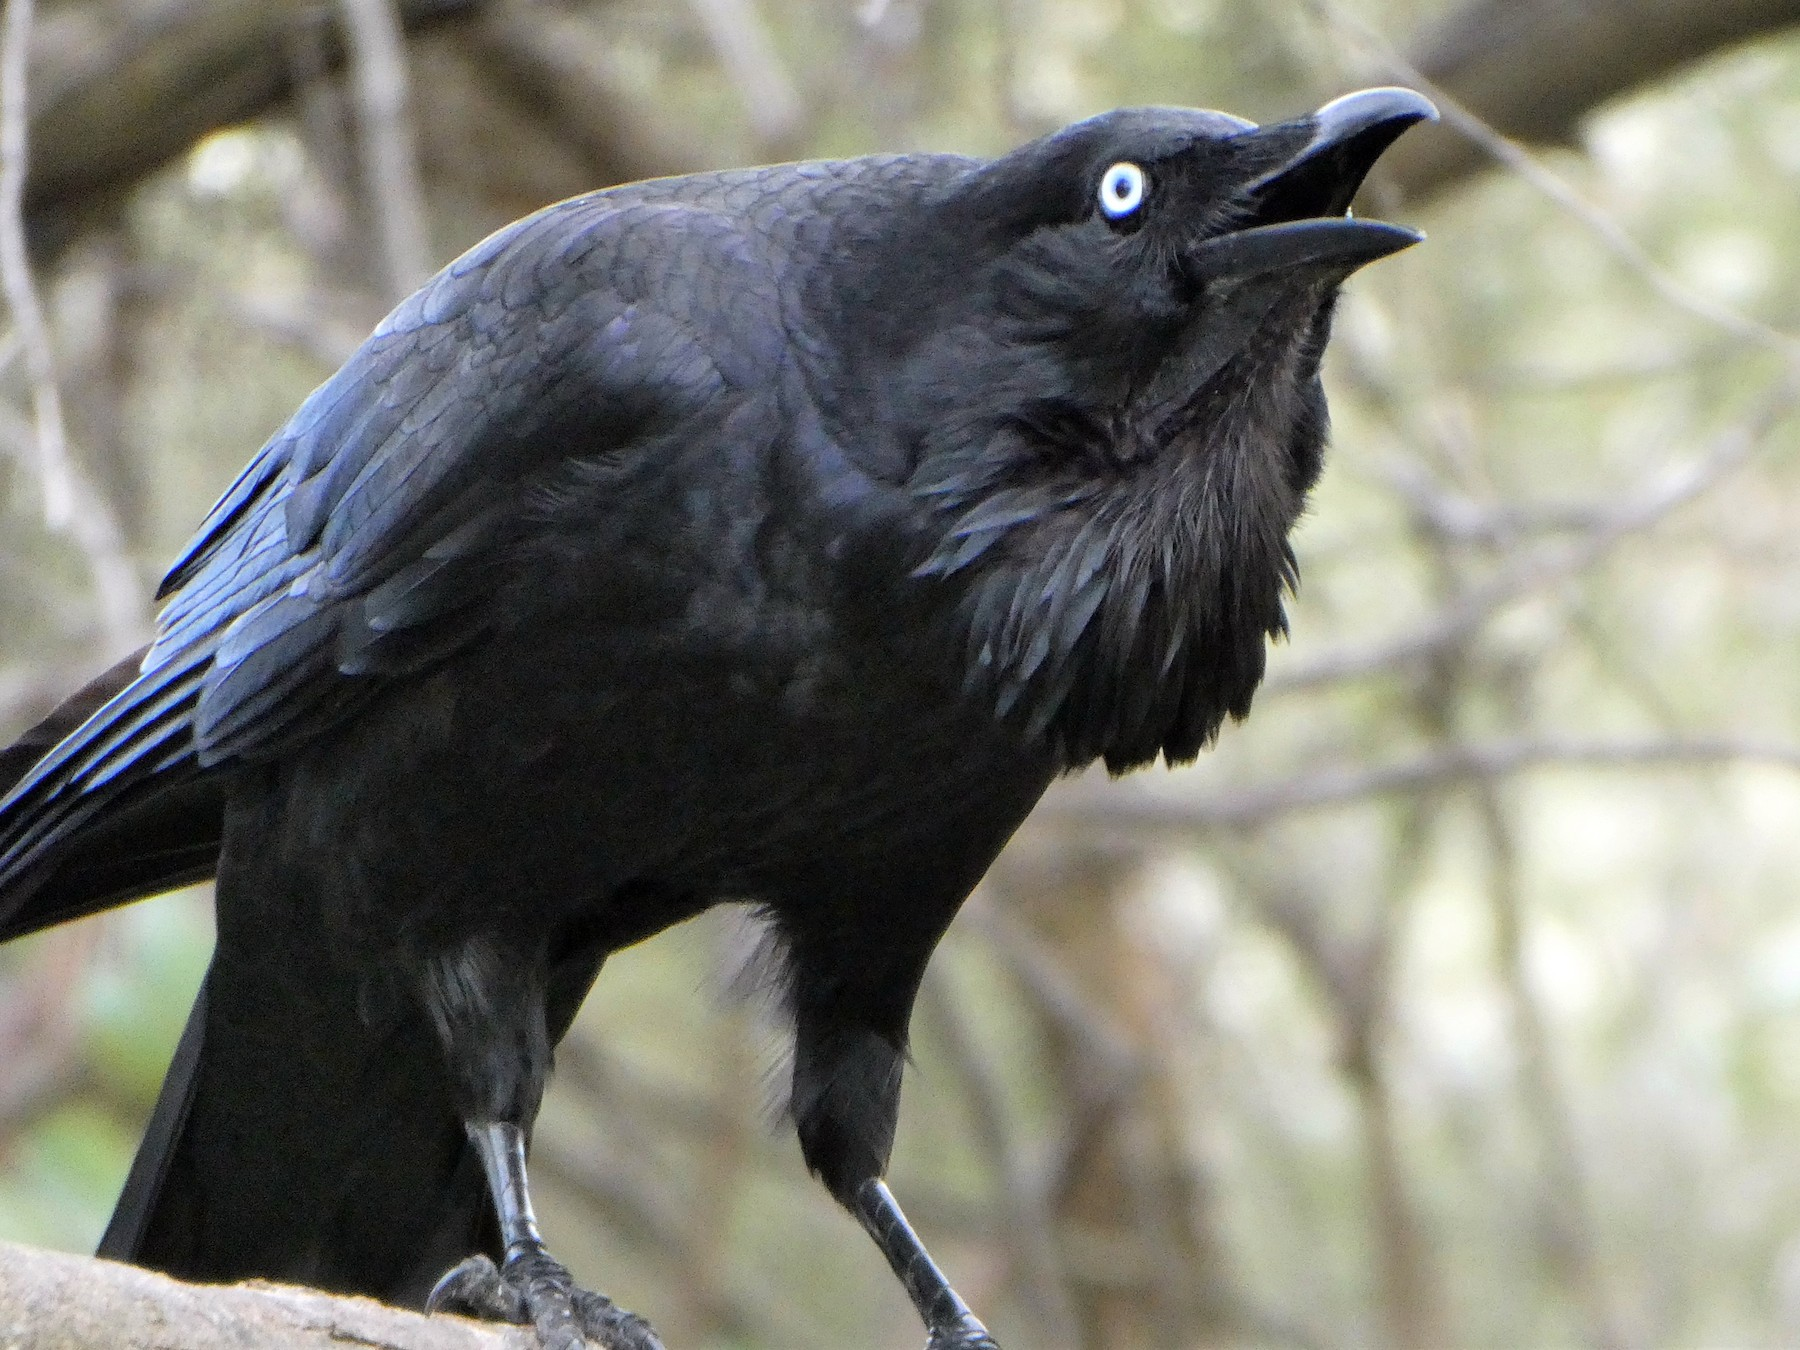 Australian Raven - Shelley Altman